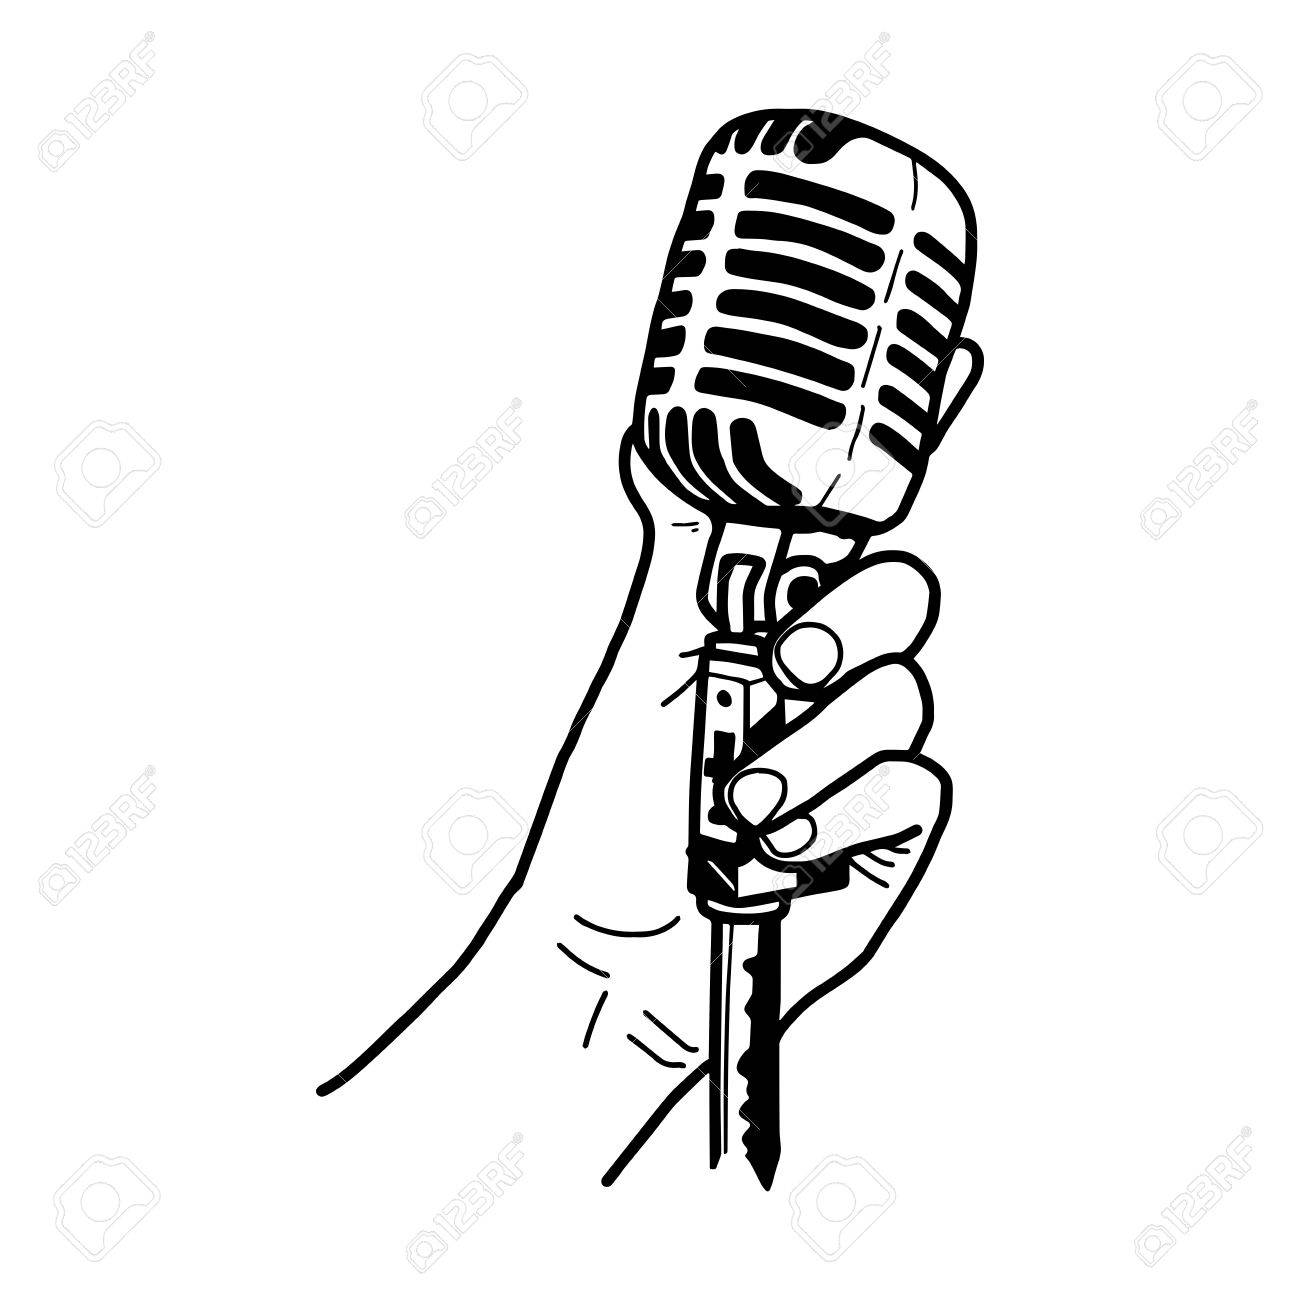 1300x1300 Illustration Doodles Of Hand Holding Retro Microphone Isolated